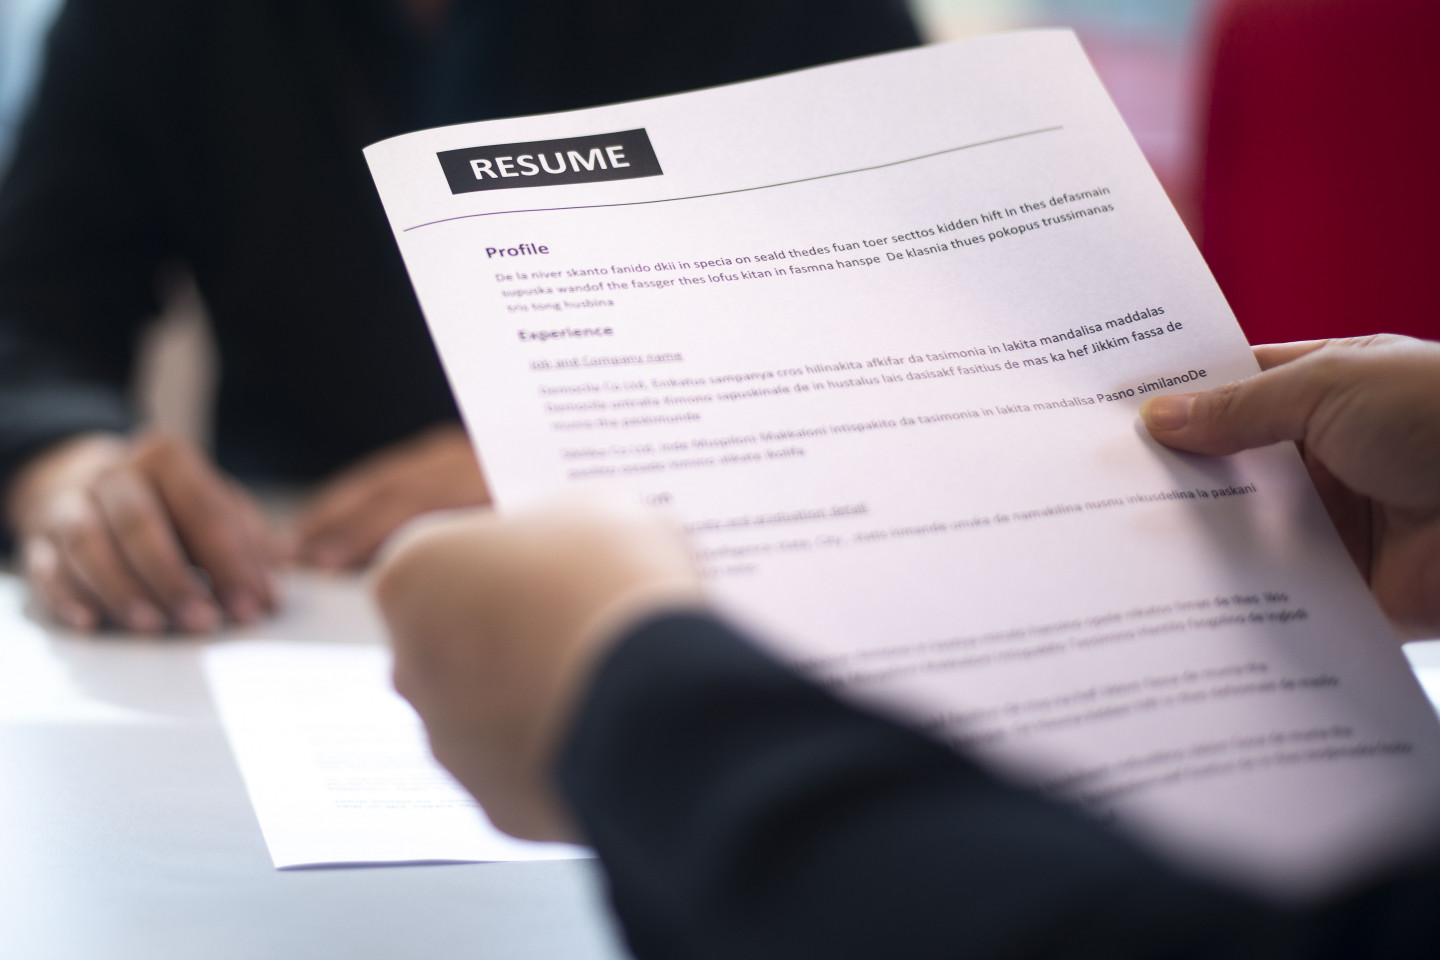 Photo of a resume held in a person's hands.